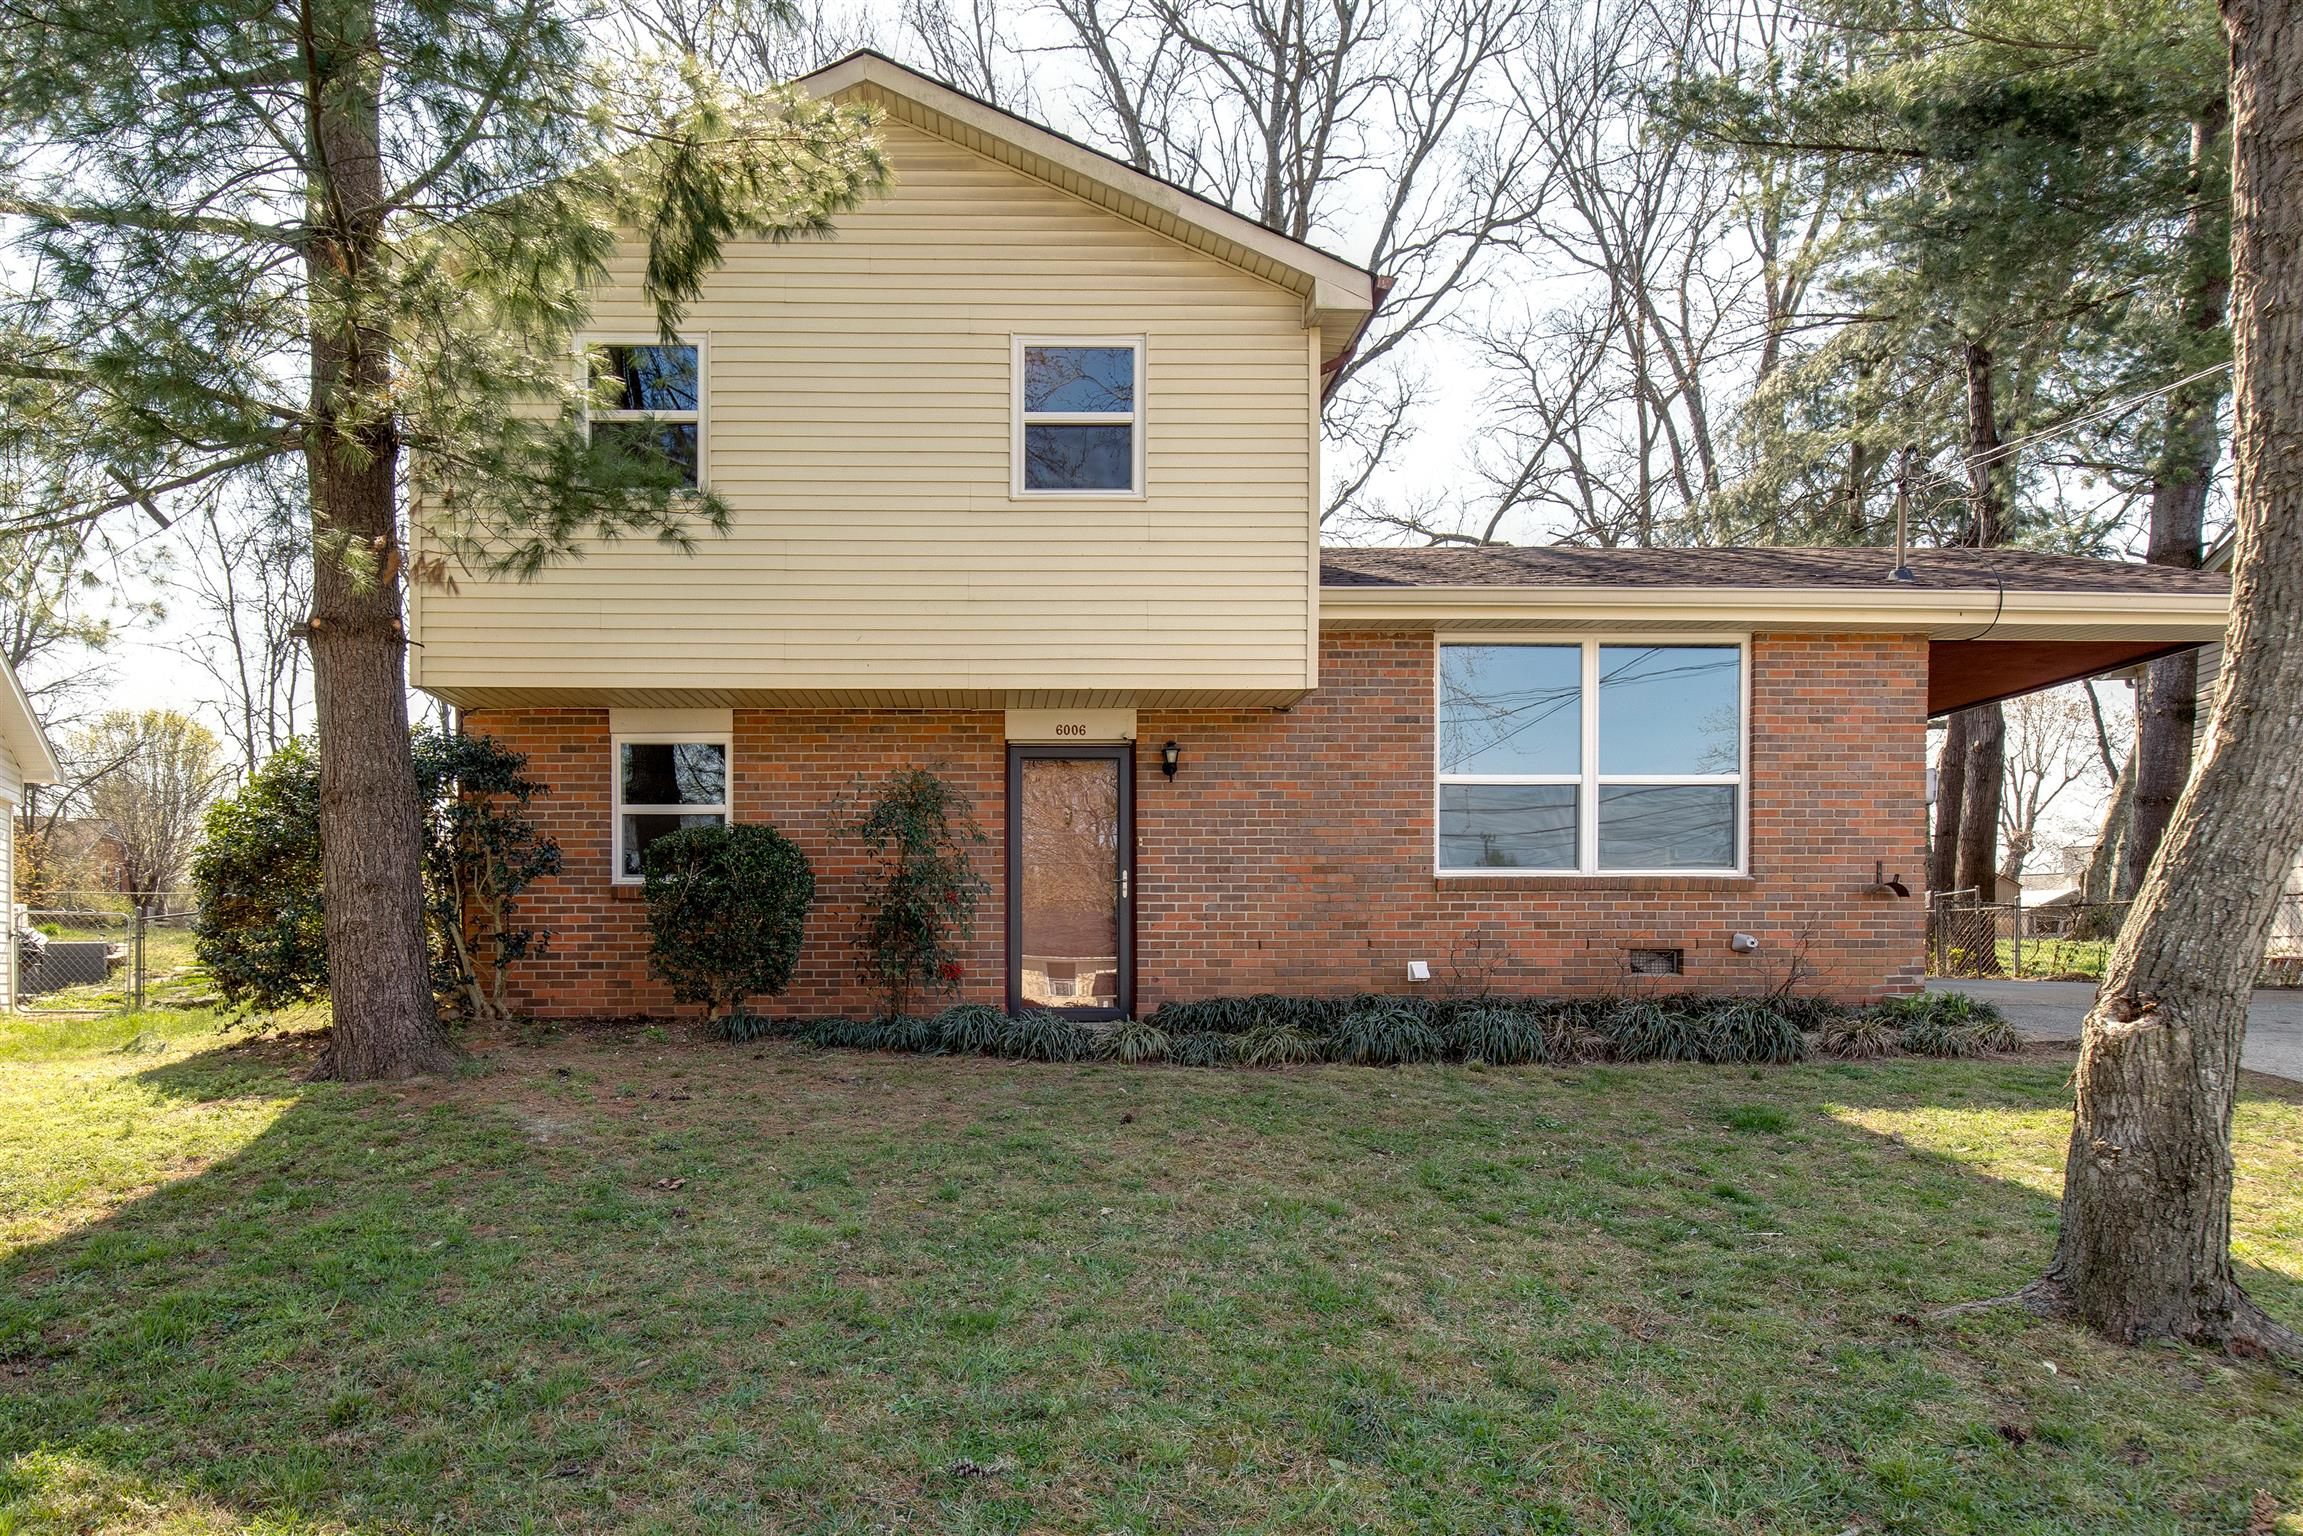 Dodson Heights Subdivision Homes For Sale Hermitage TN